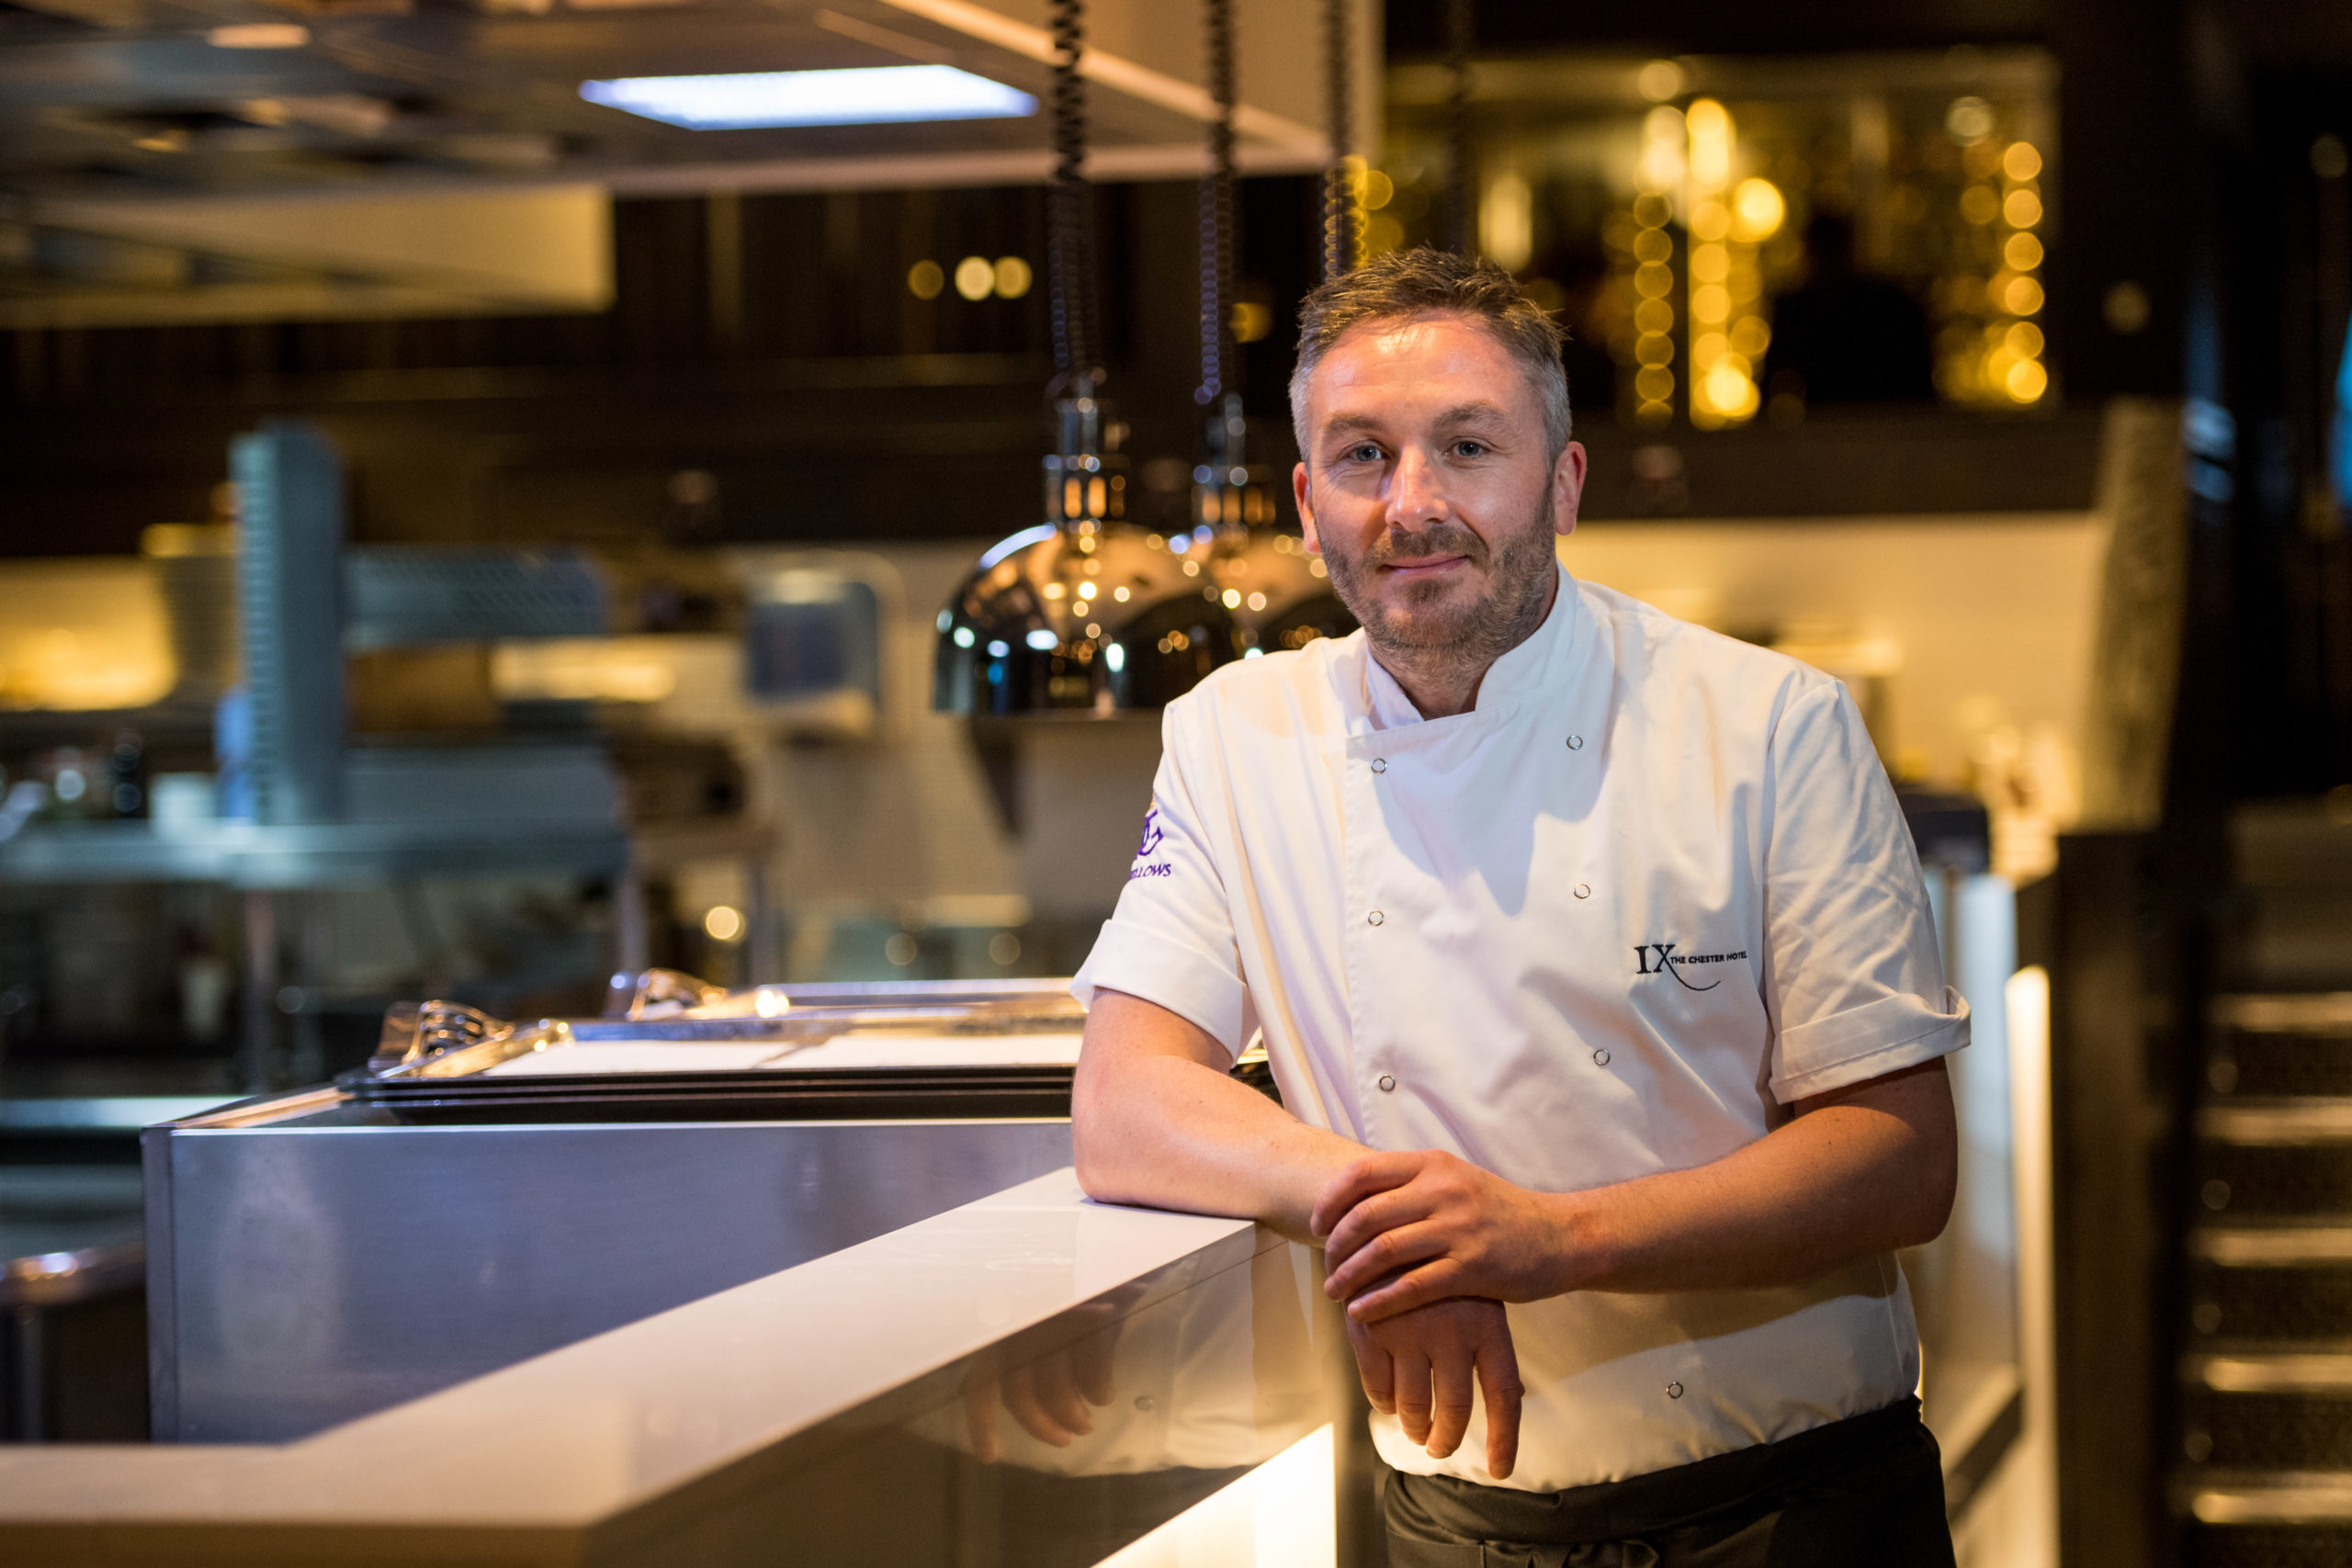 Kevin Dalgleish, Head chef at The Chester Hotel.